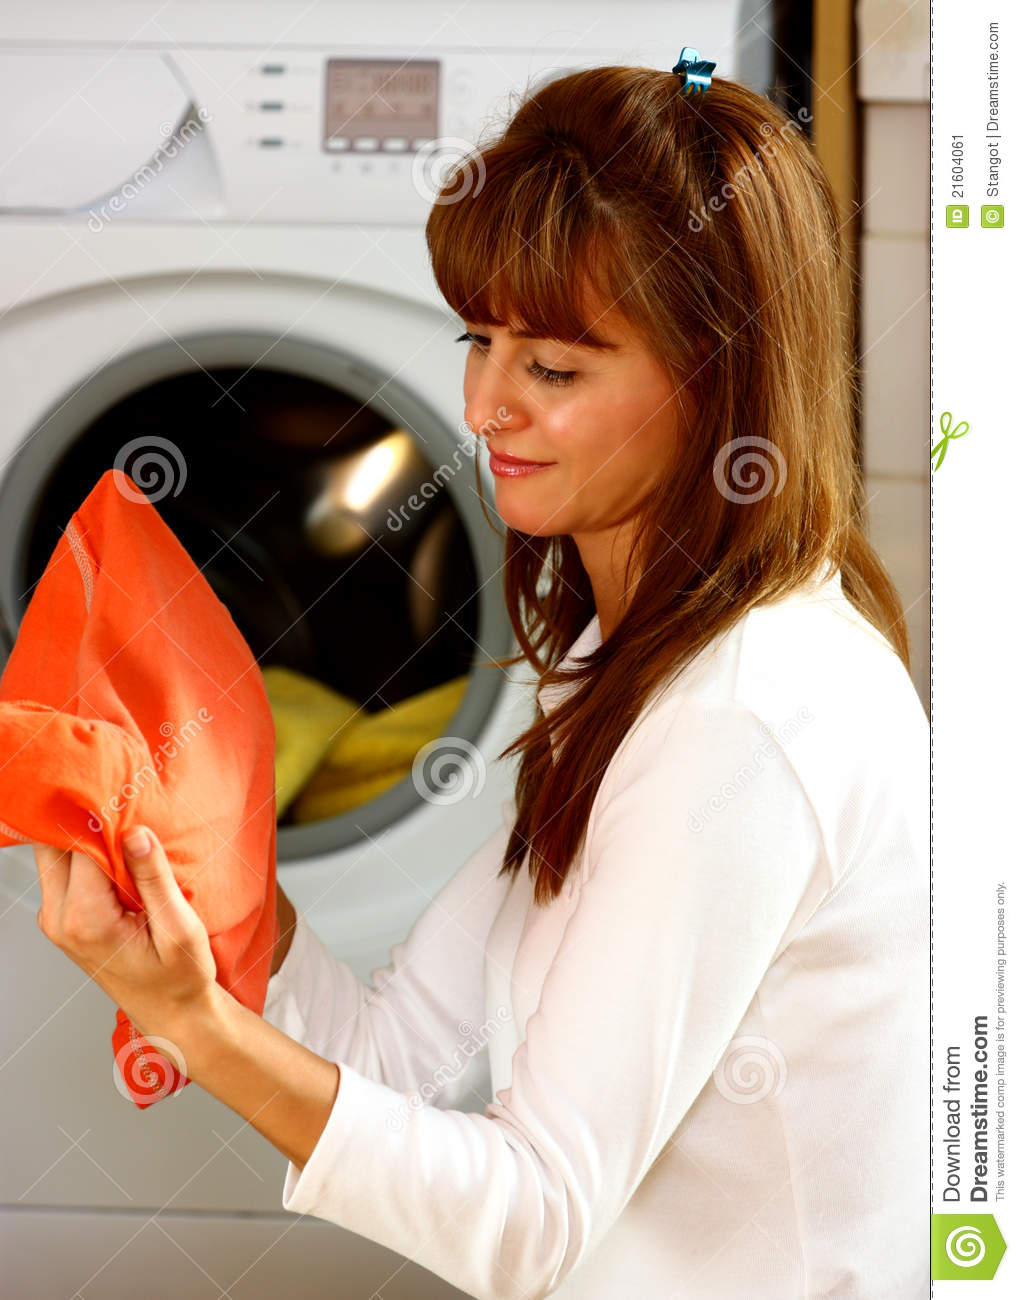 woman-doing-laundry-21604061.jpg